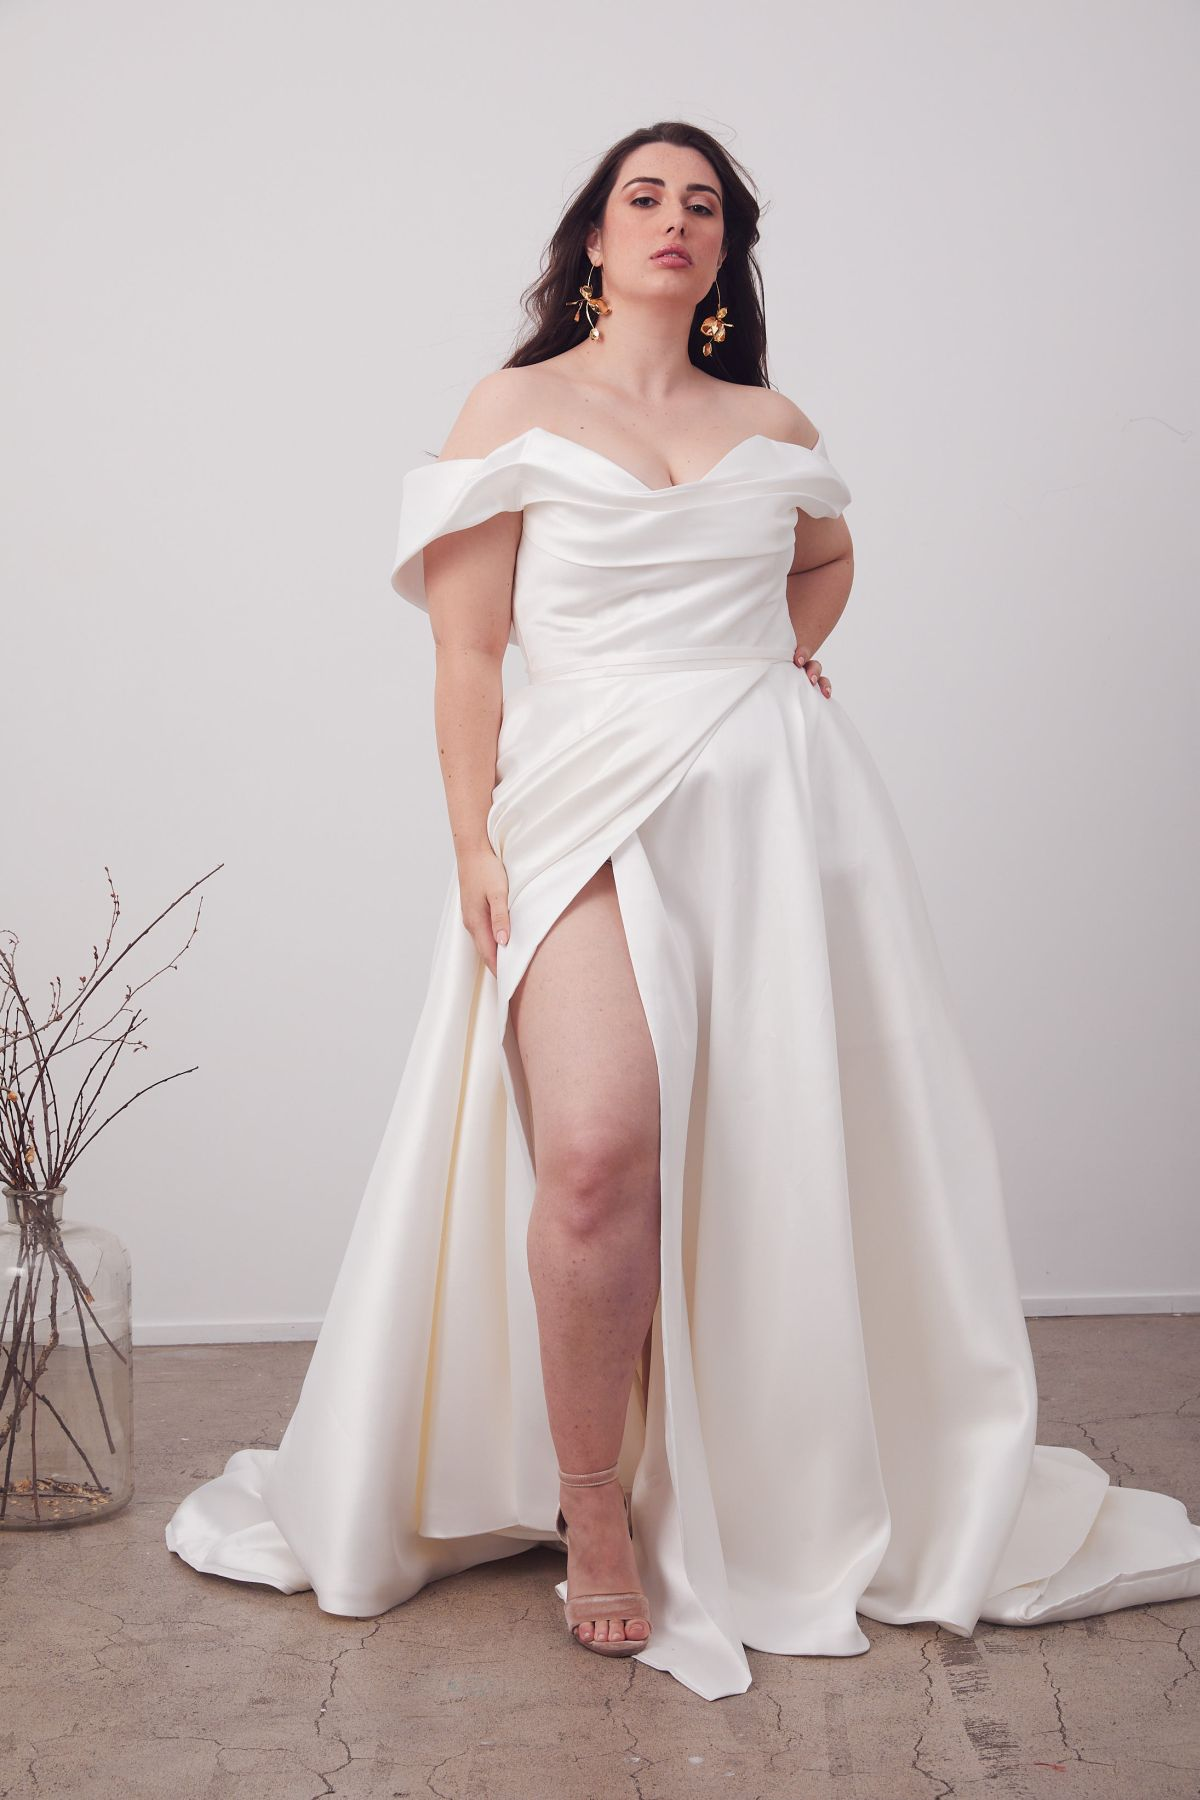 LeBelle_Hera_Couture_Cruve_Collection_Brisbane_WhiteLilyCouture (3)